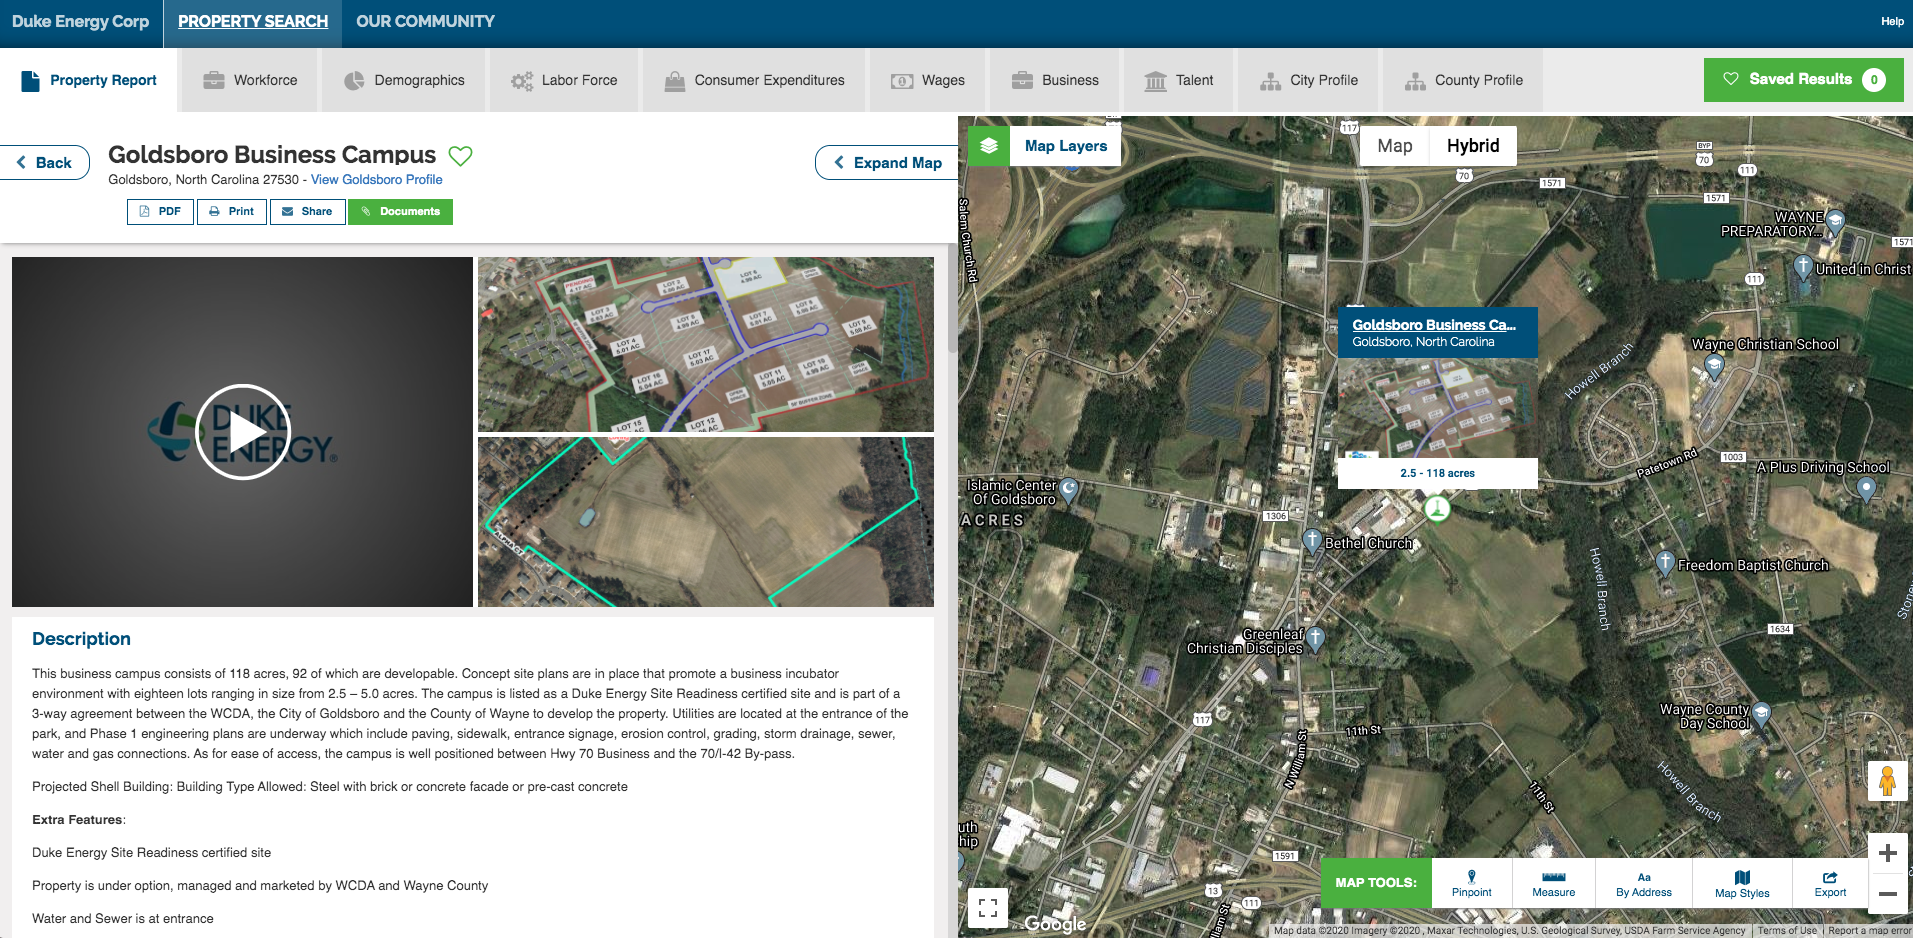 Add video for virtual site visits to GIS data tools for economic development